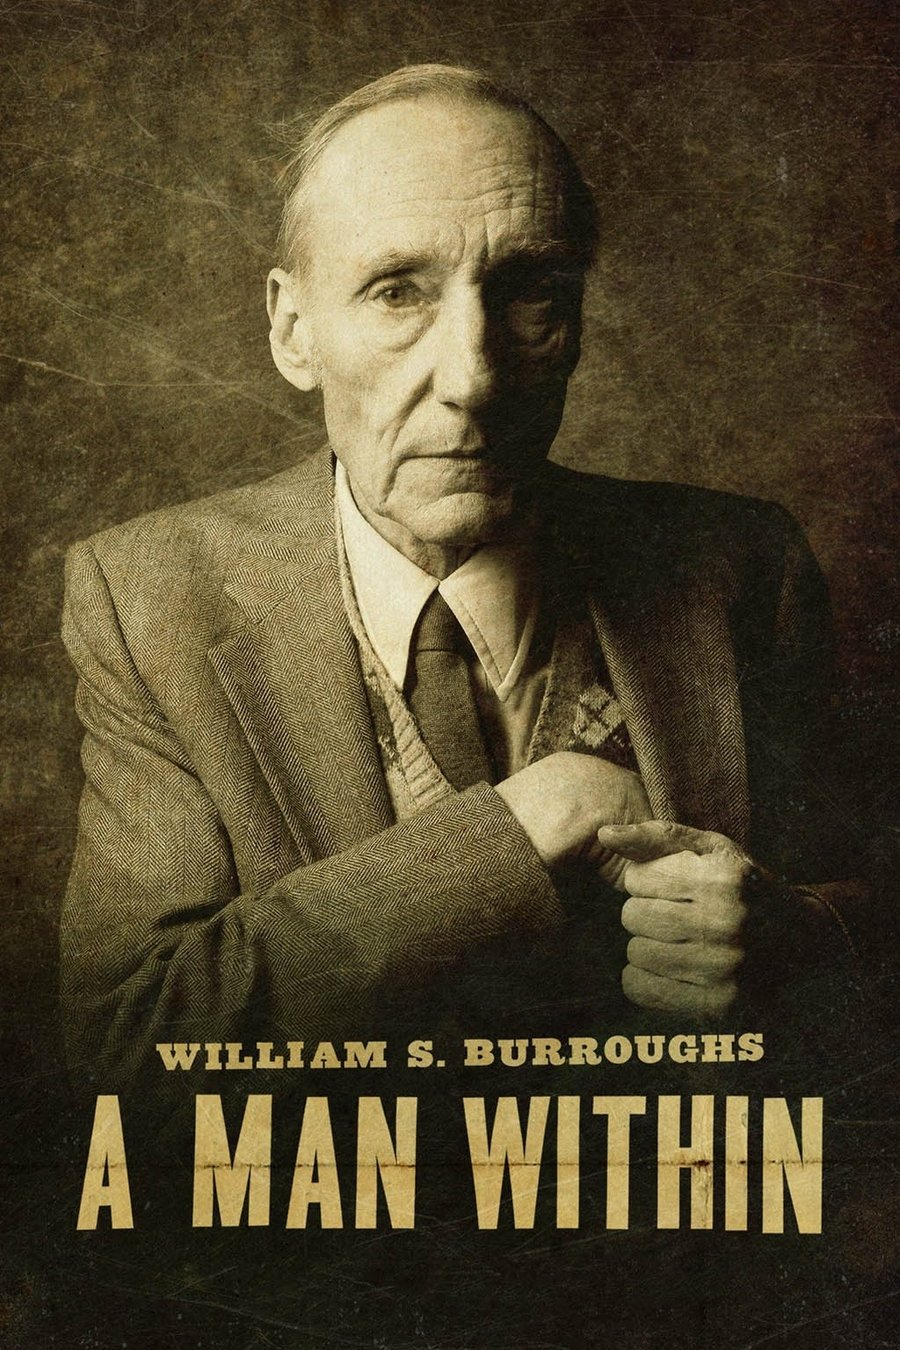 William S. Burroughs: A man within